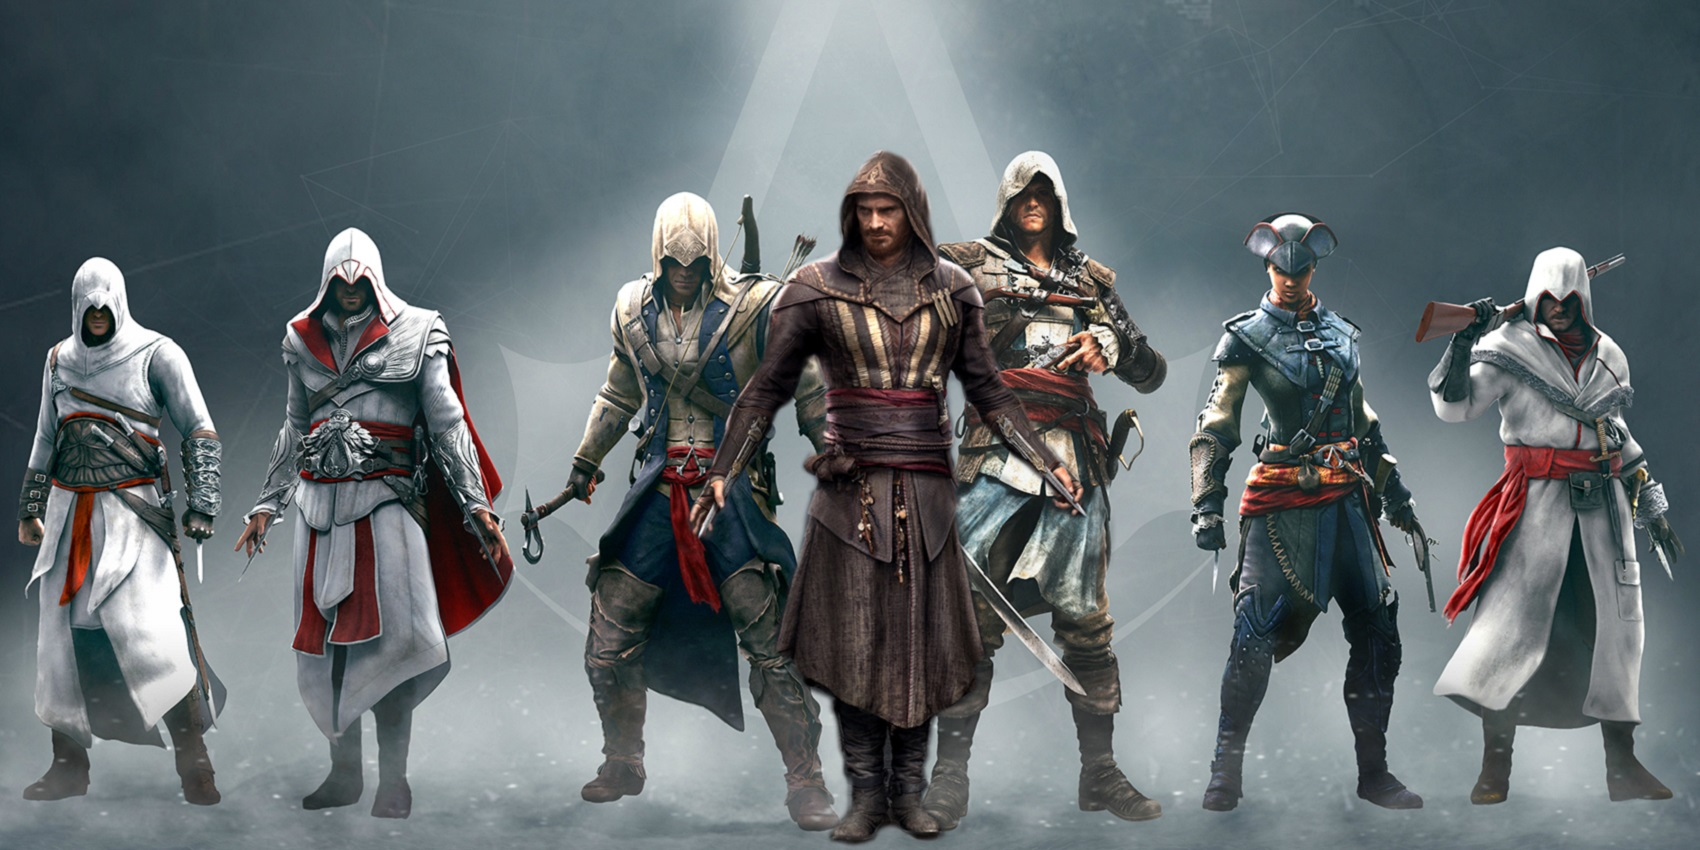 https://screenrant.com/wp-content/uploads/Assassins-Creed-Aguilar-with-other-Assassins.jpg